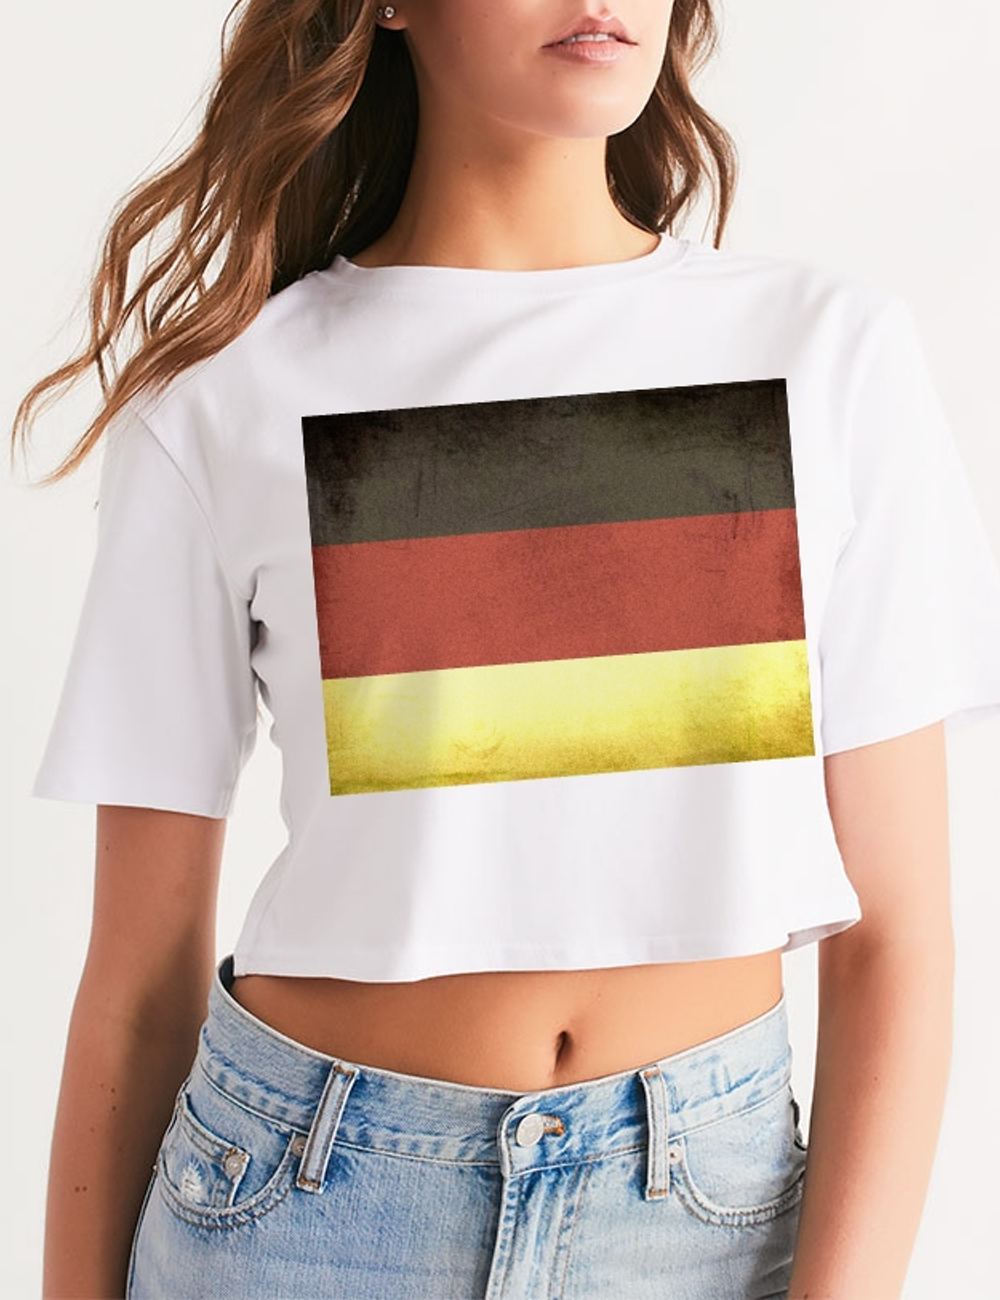 Vintage German Flag | Women's Relaxed Crop Top T-Shirt